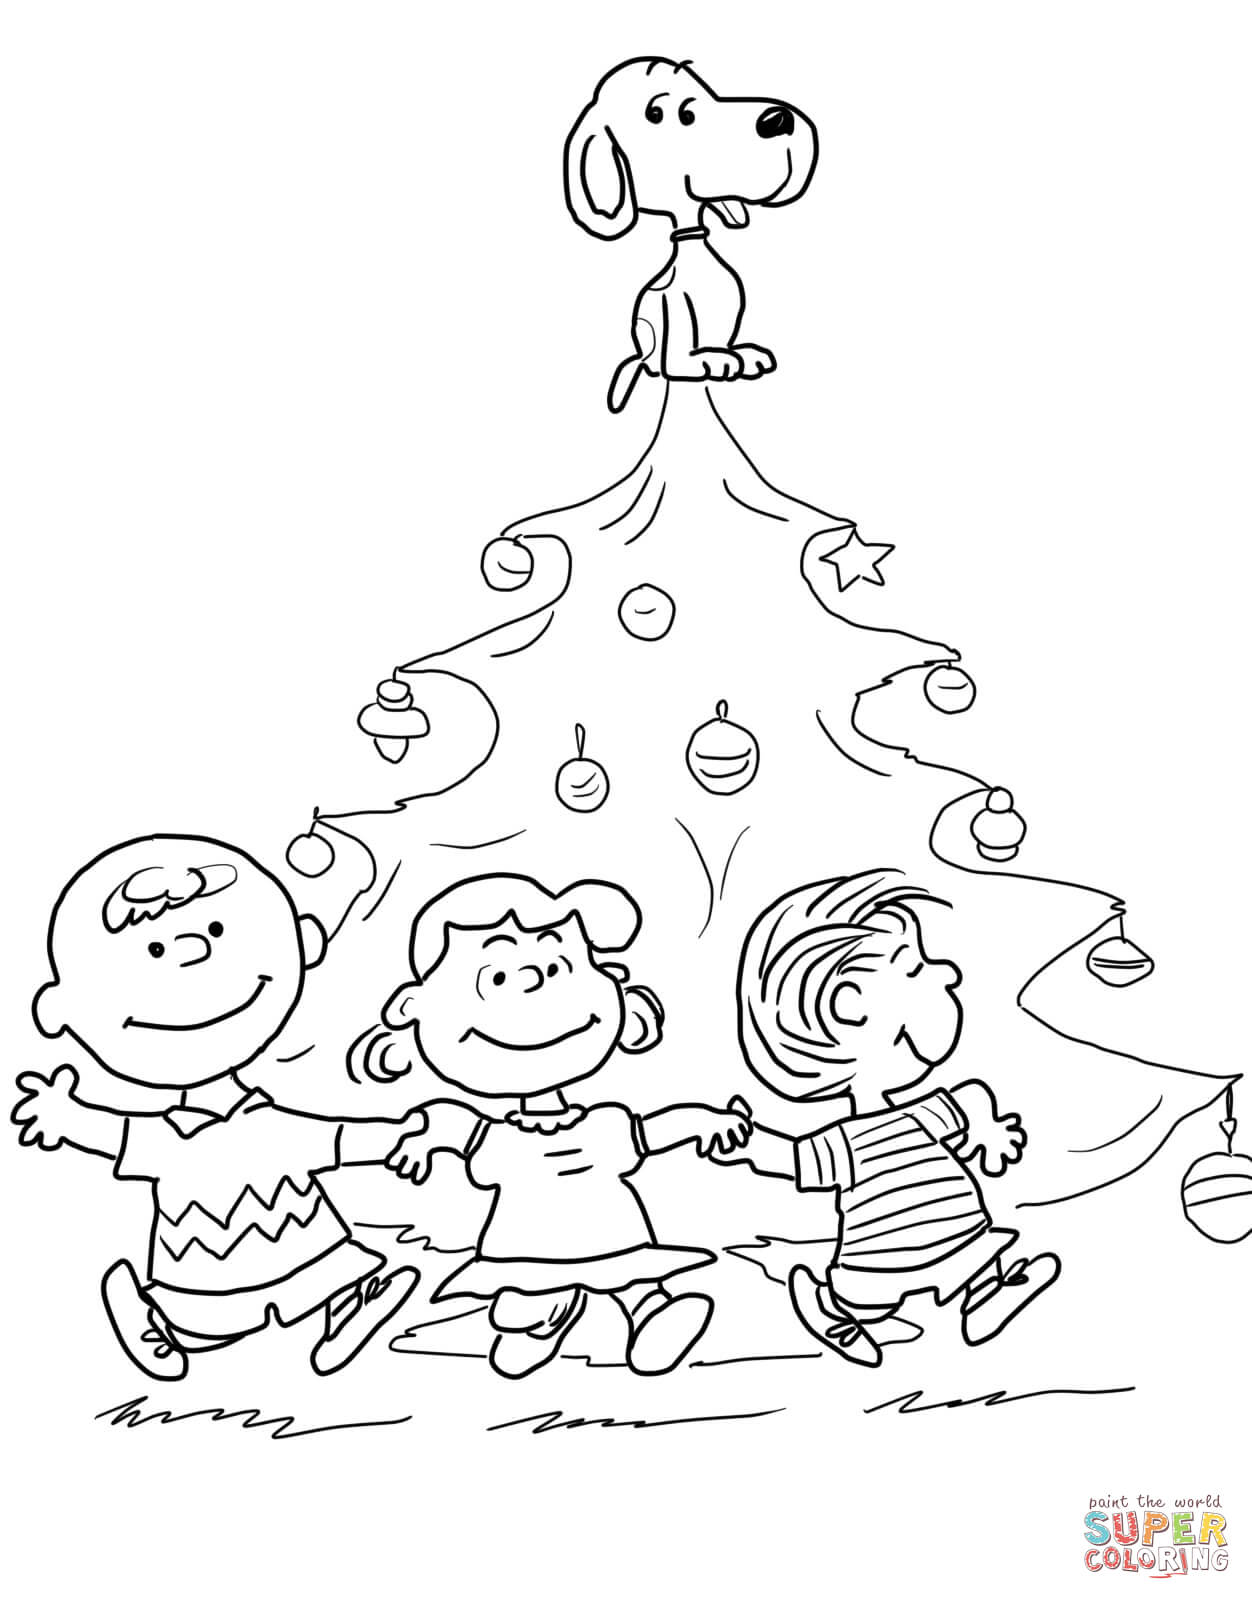 Christmas Coloring Printouts With Charlie Brown Page Free Printable Pages